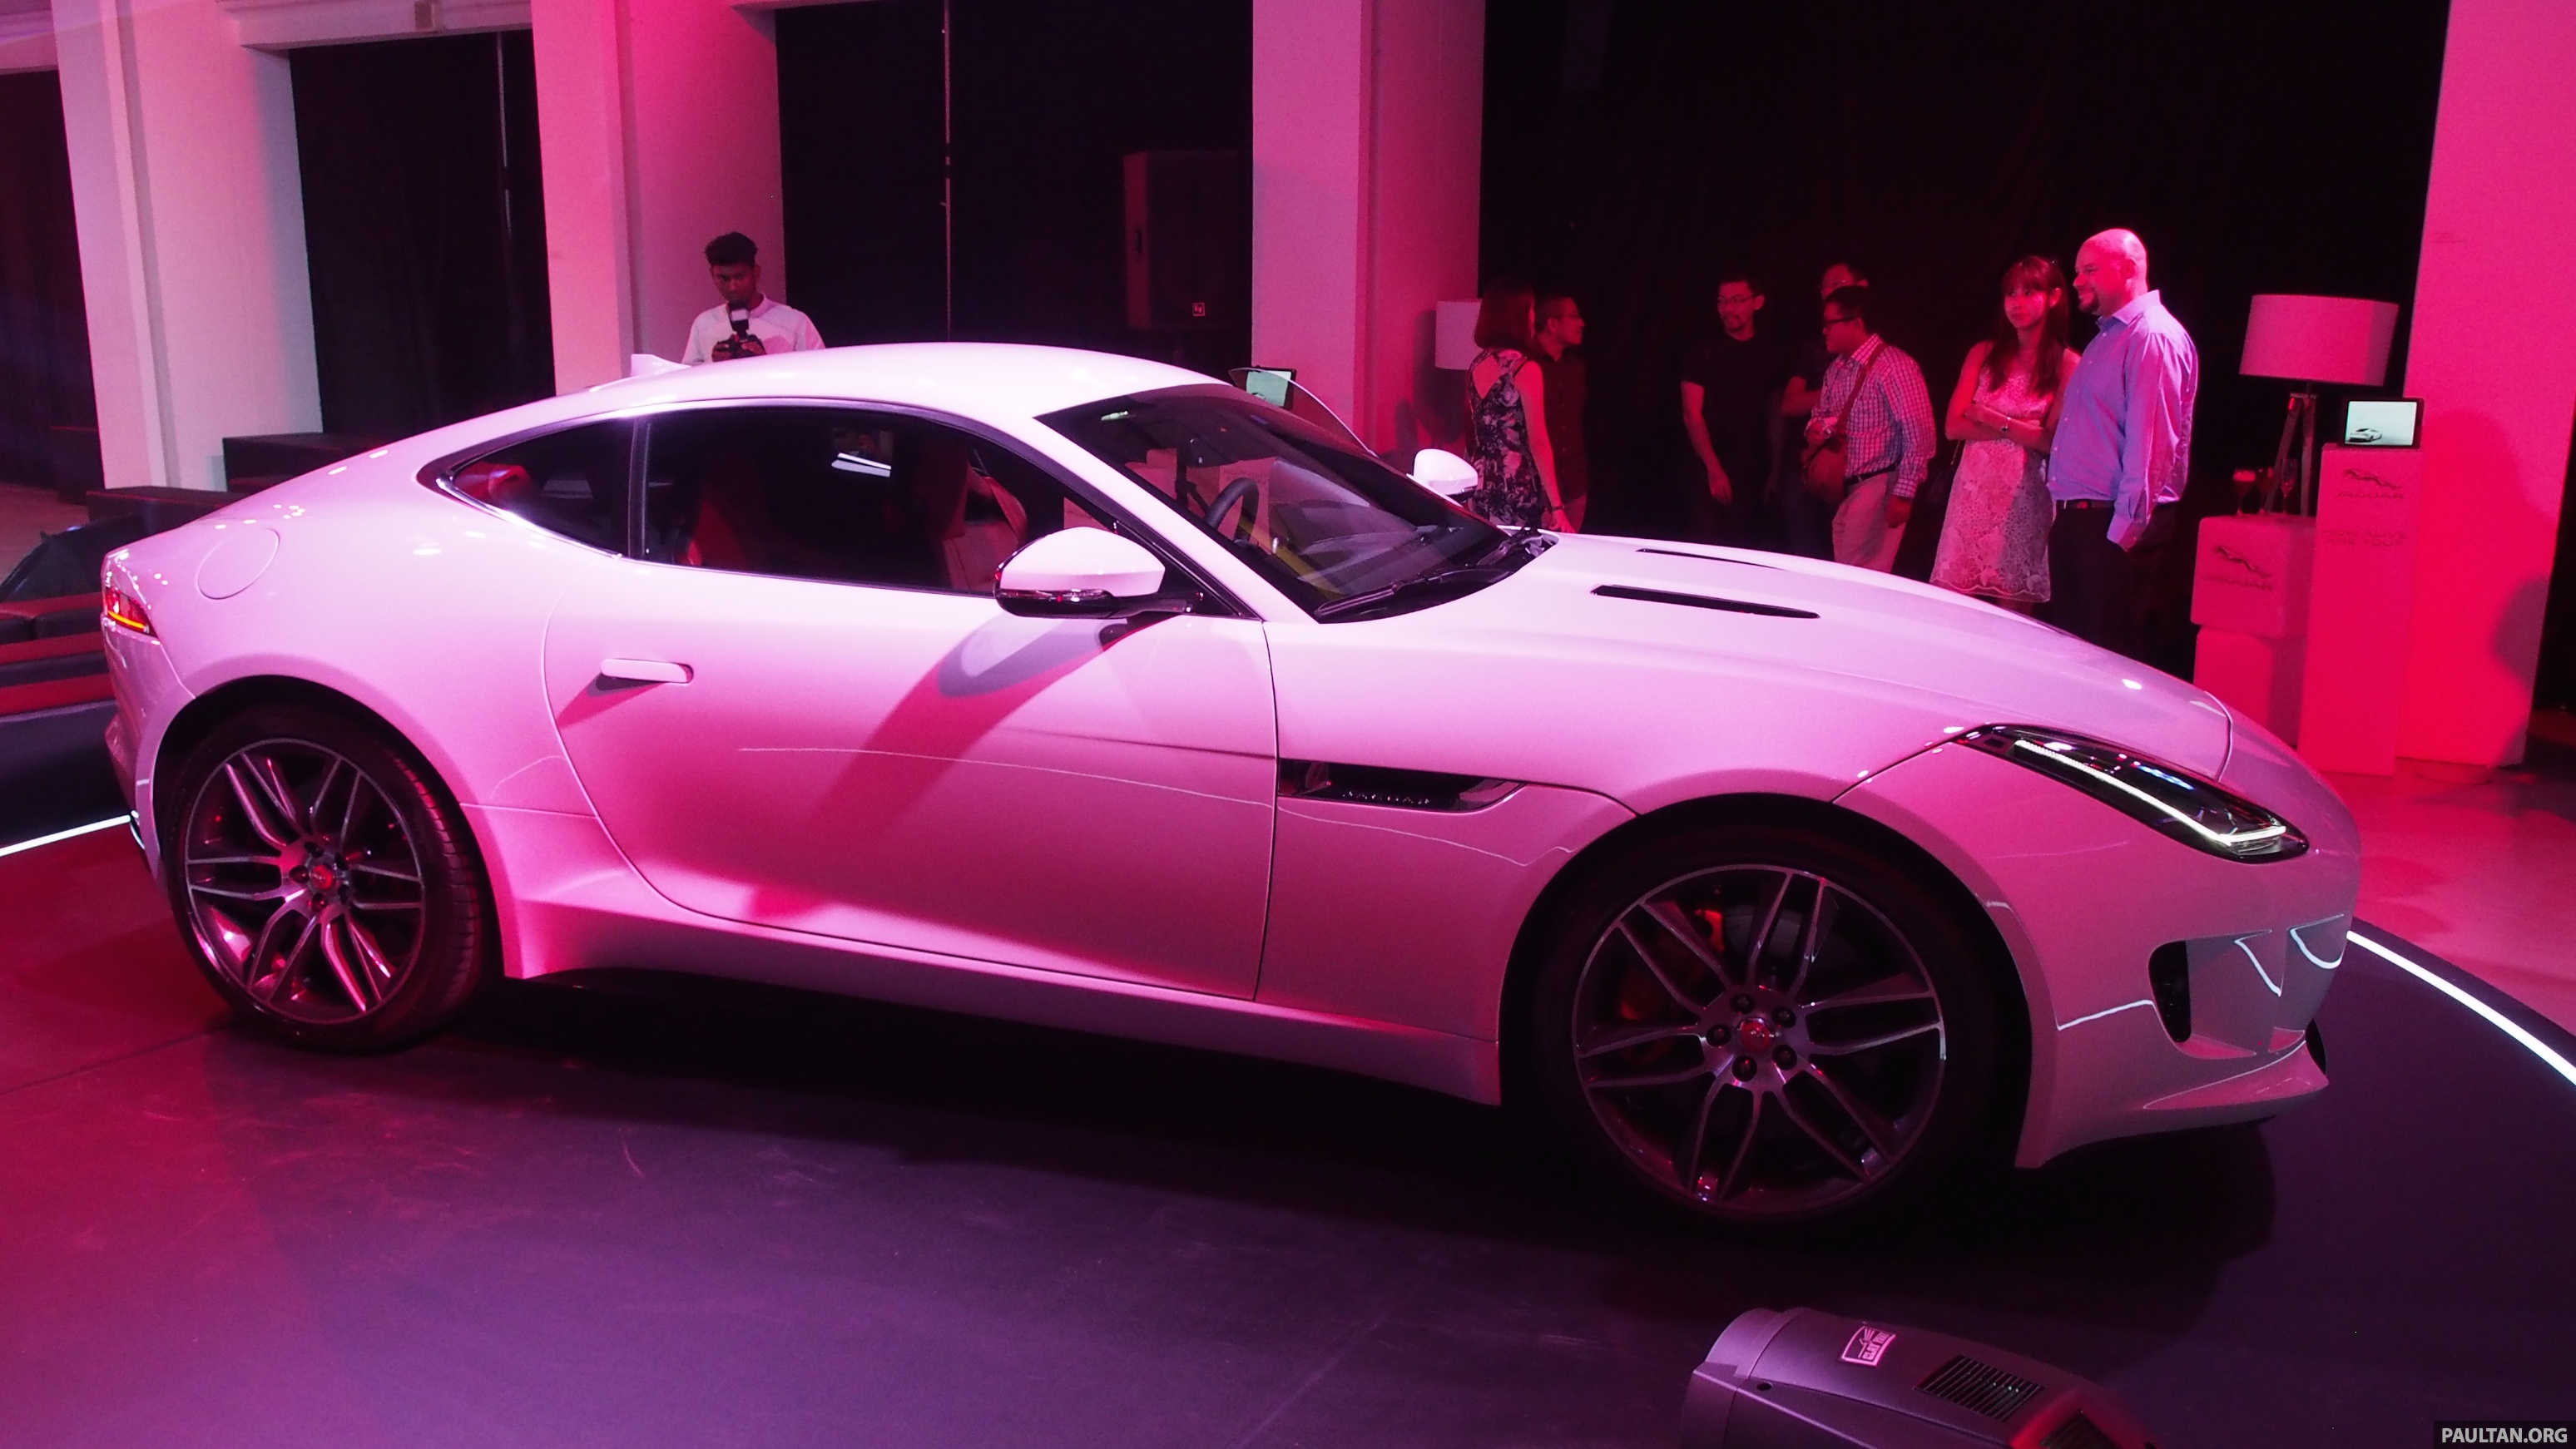 F Type Coupe >> Jaguar F-Type Coupe coming to Malaysia in Q3 2014 Image 246827